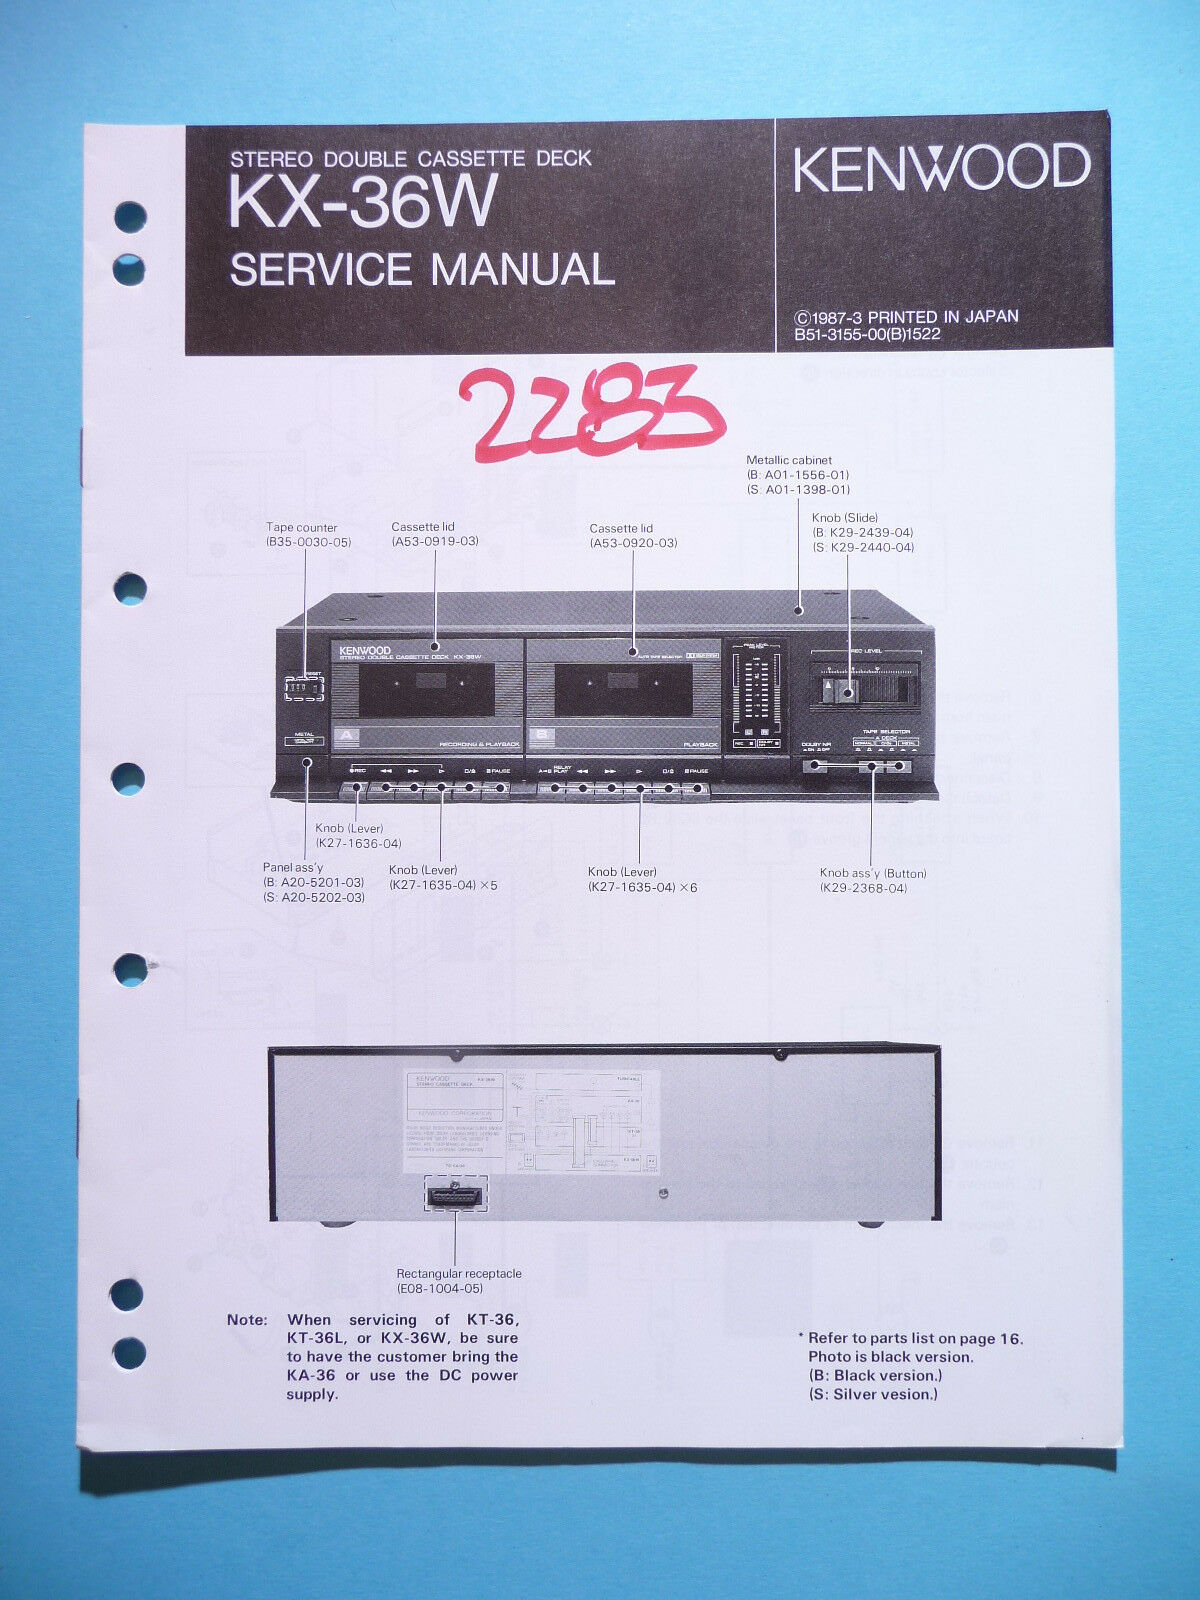 Service Manual Instructions For Kenwood KX-36W ,ORIGINAL 1 of 1Only 1  available ...